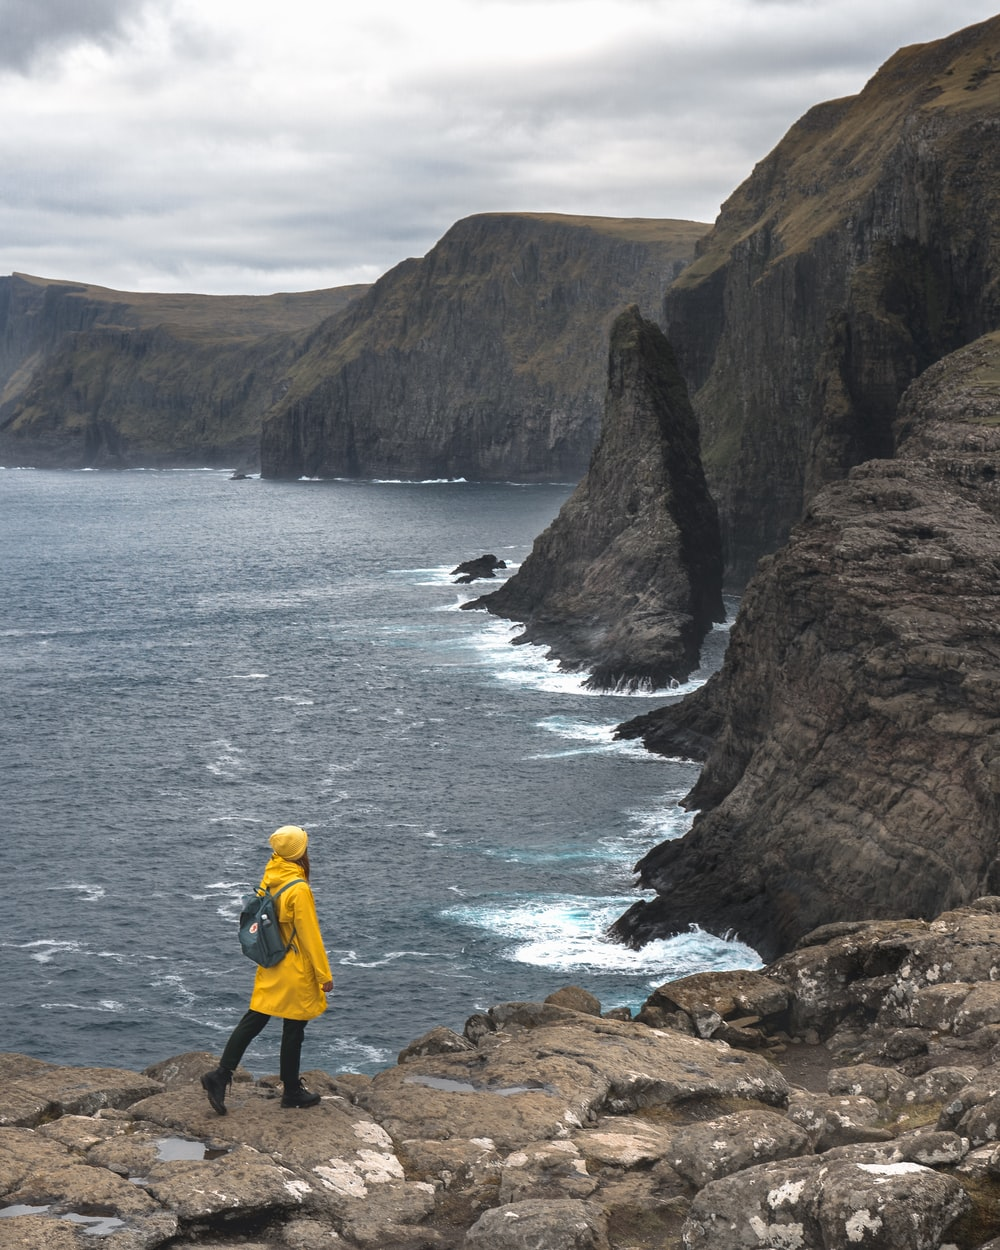 man in yellow jacket and black pants standing on brown rock formation near body of water